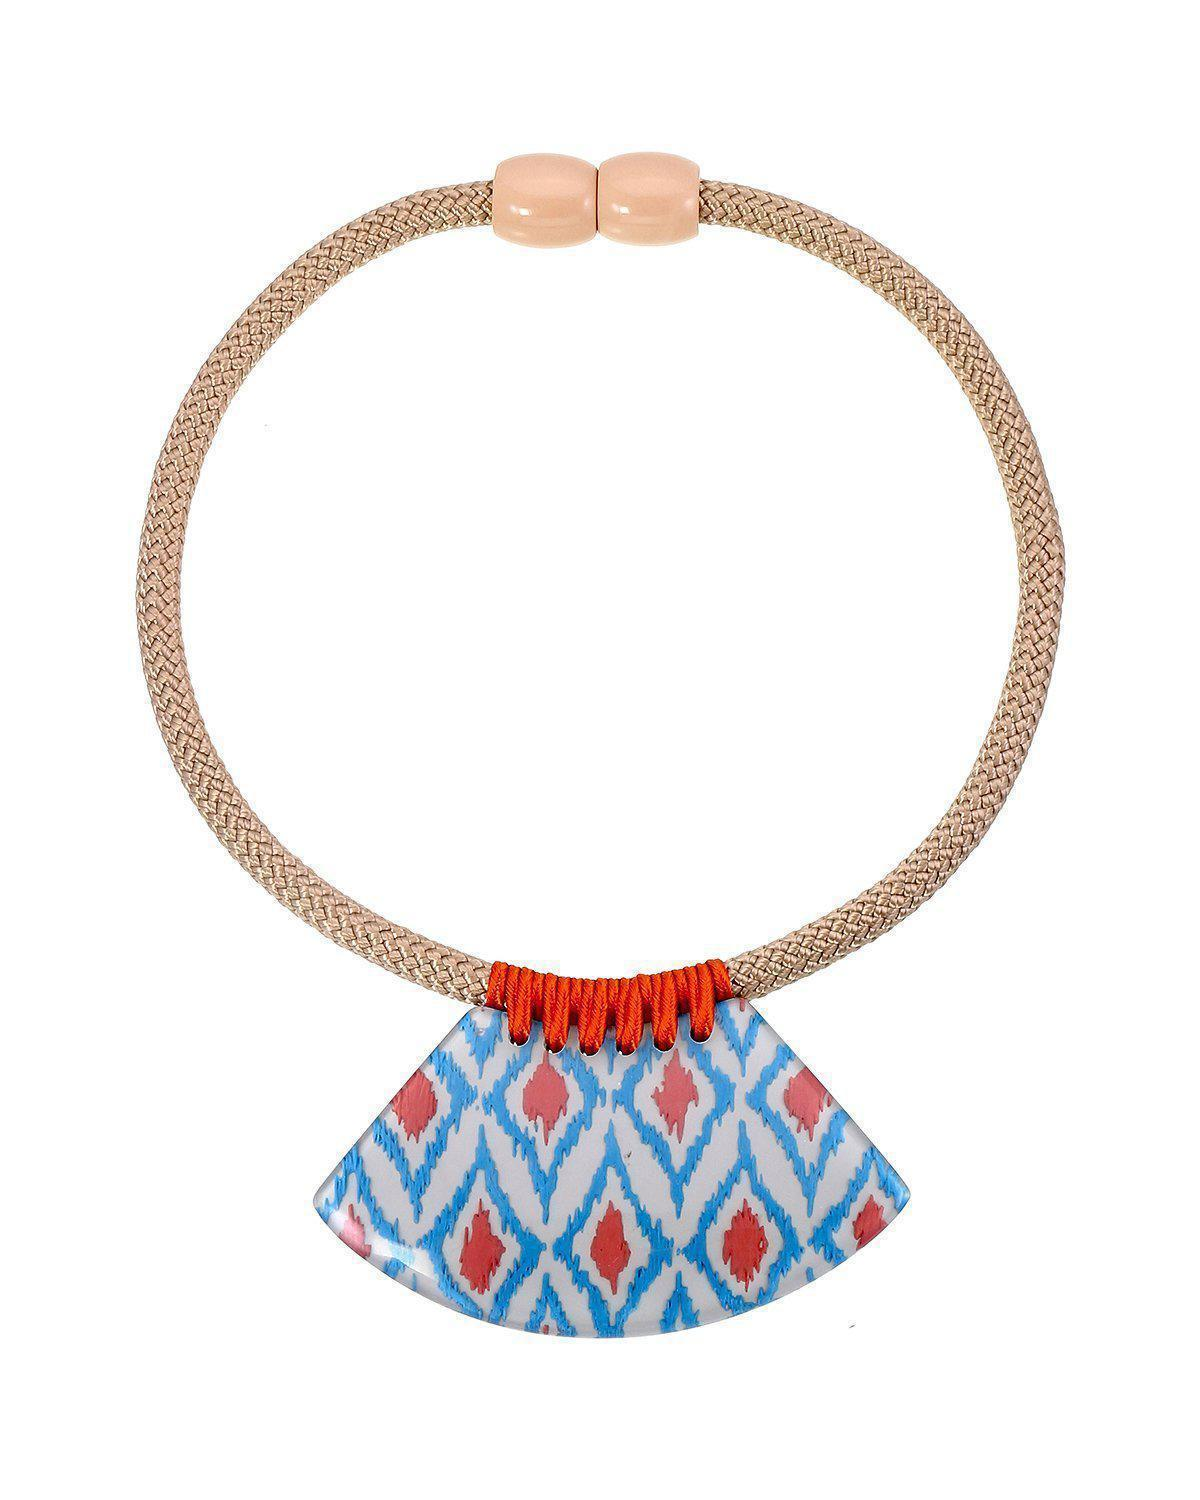 Zsiska Ikkat White, Blue and Orange Pendant on Choker Necklace-Jewellery-Zsiska-Temples and Markets